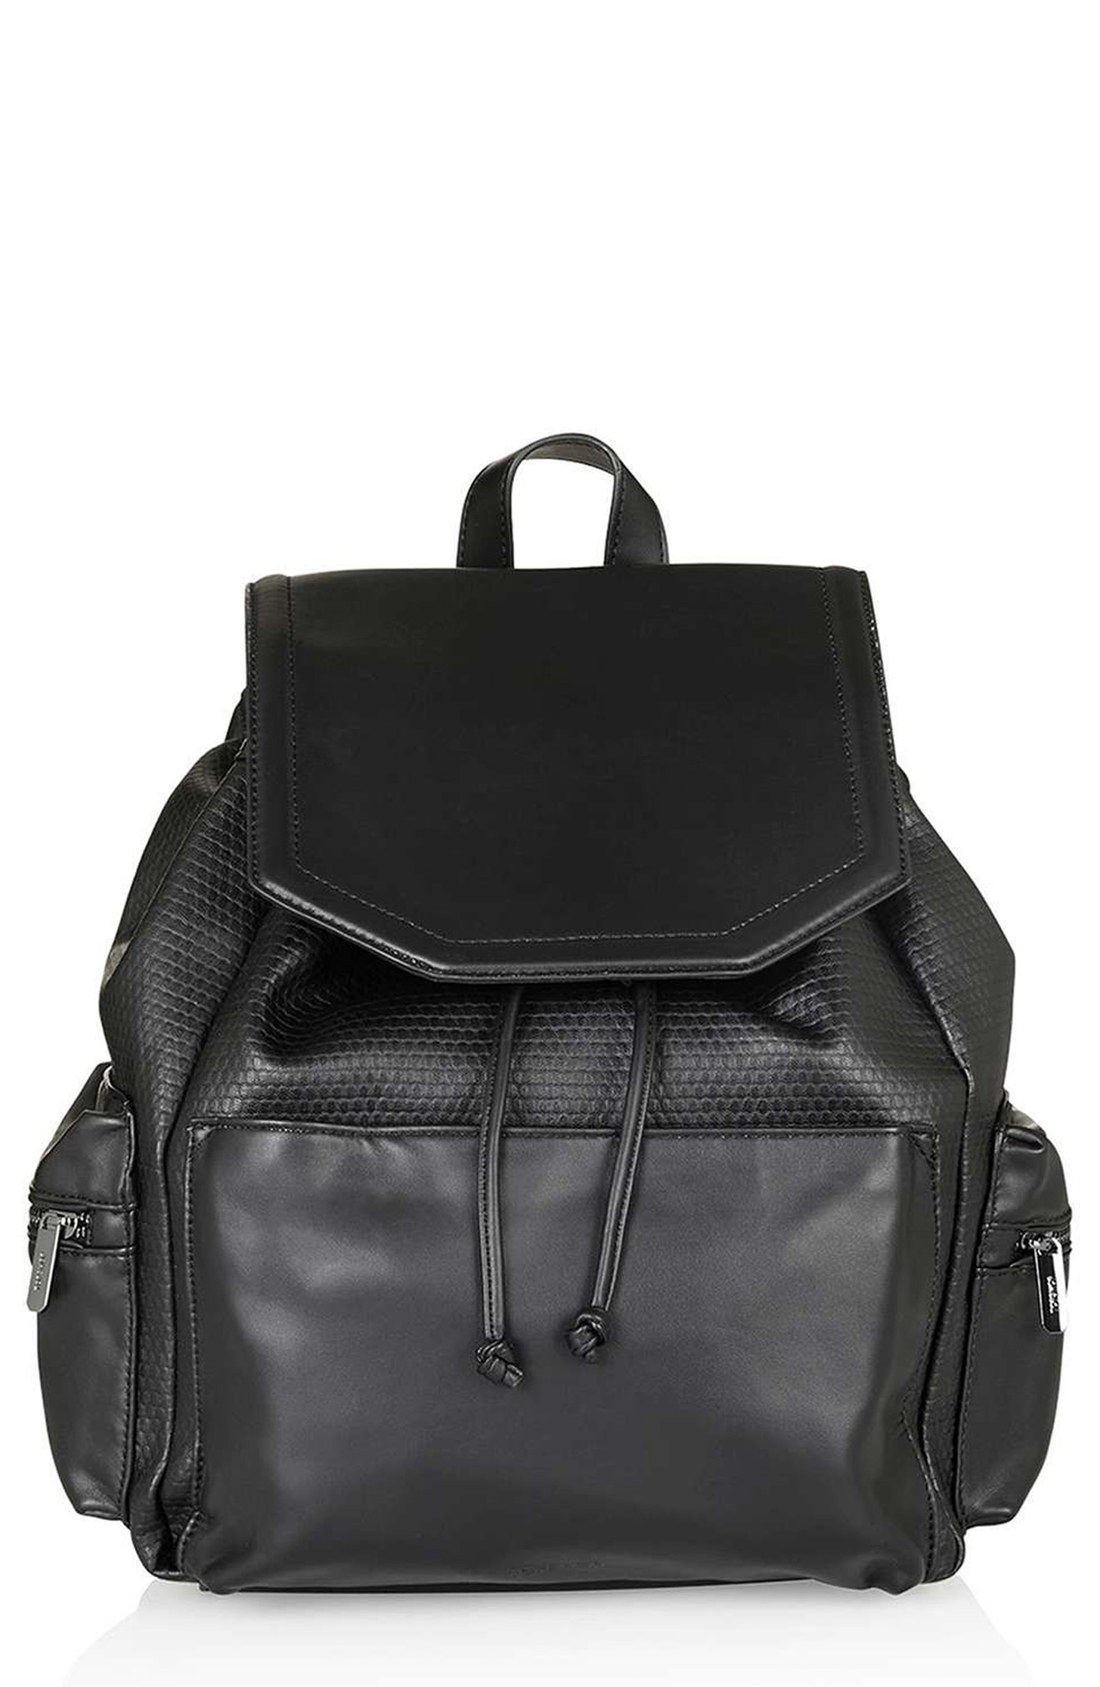 Leather Backpacks For Women dw8v2jFP